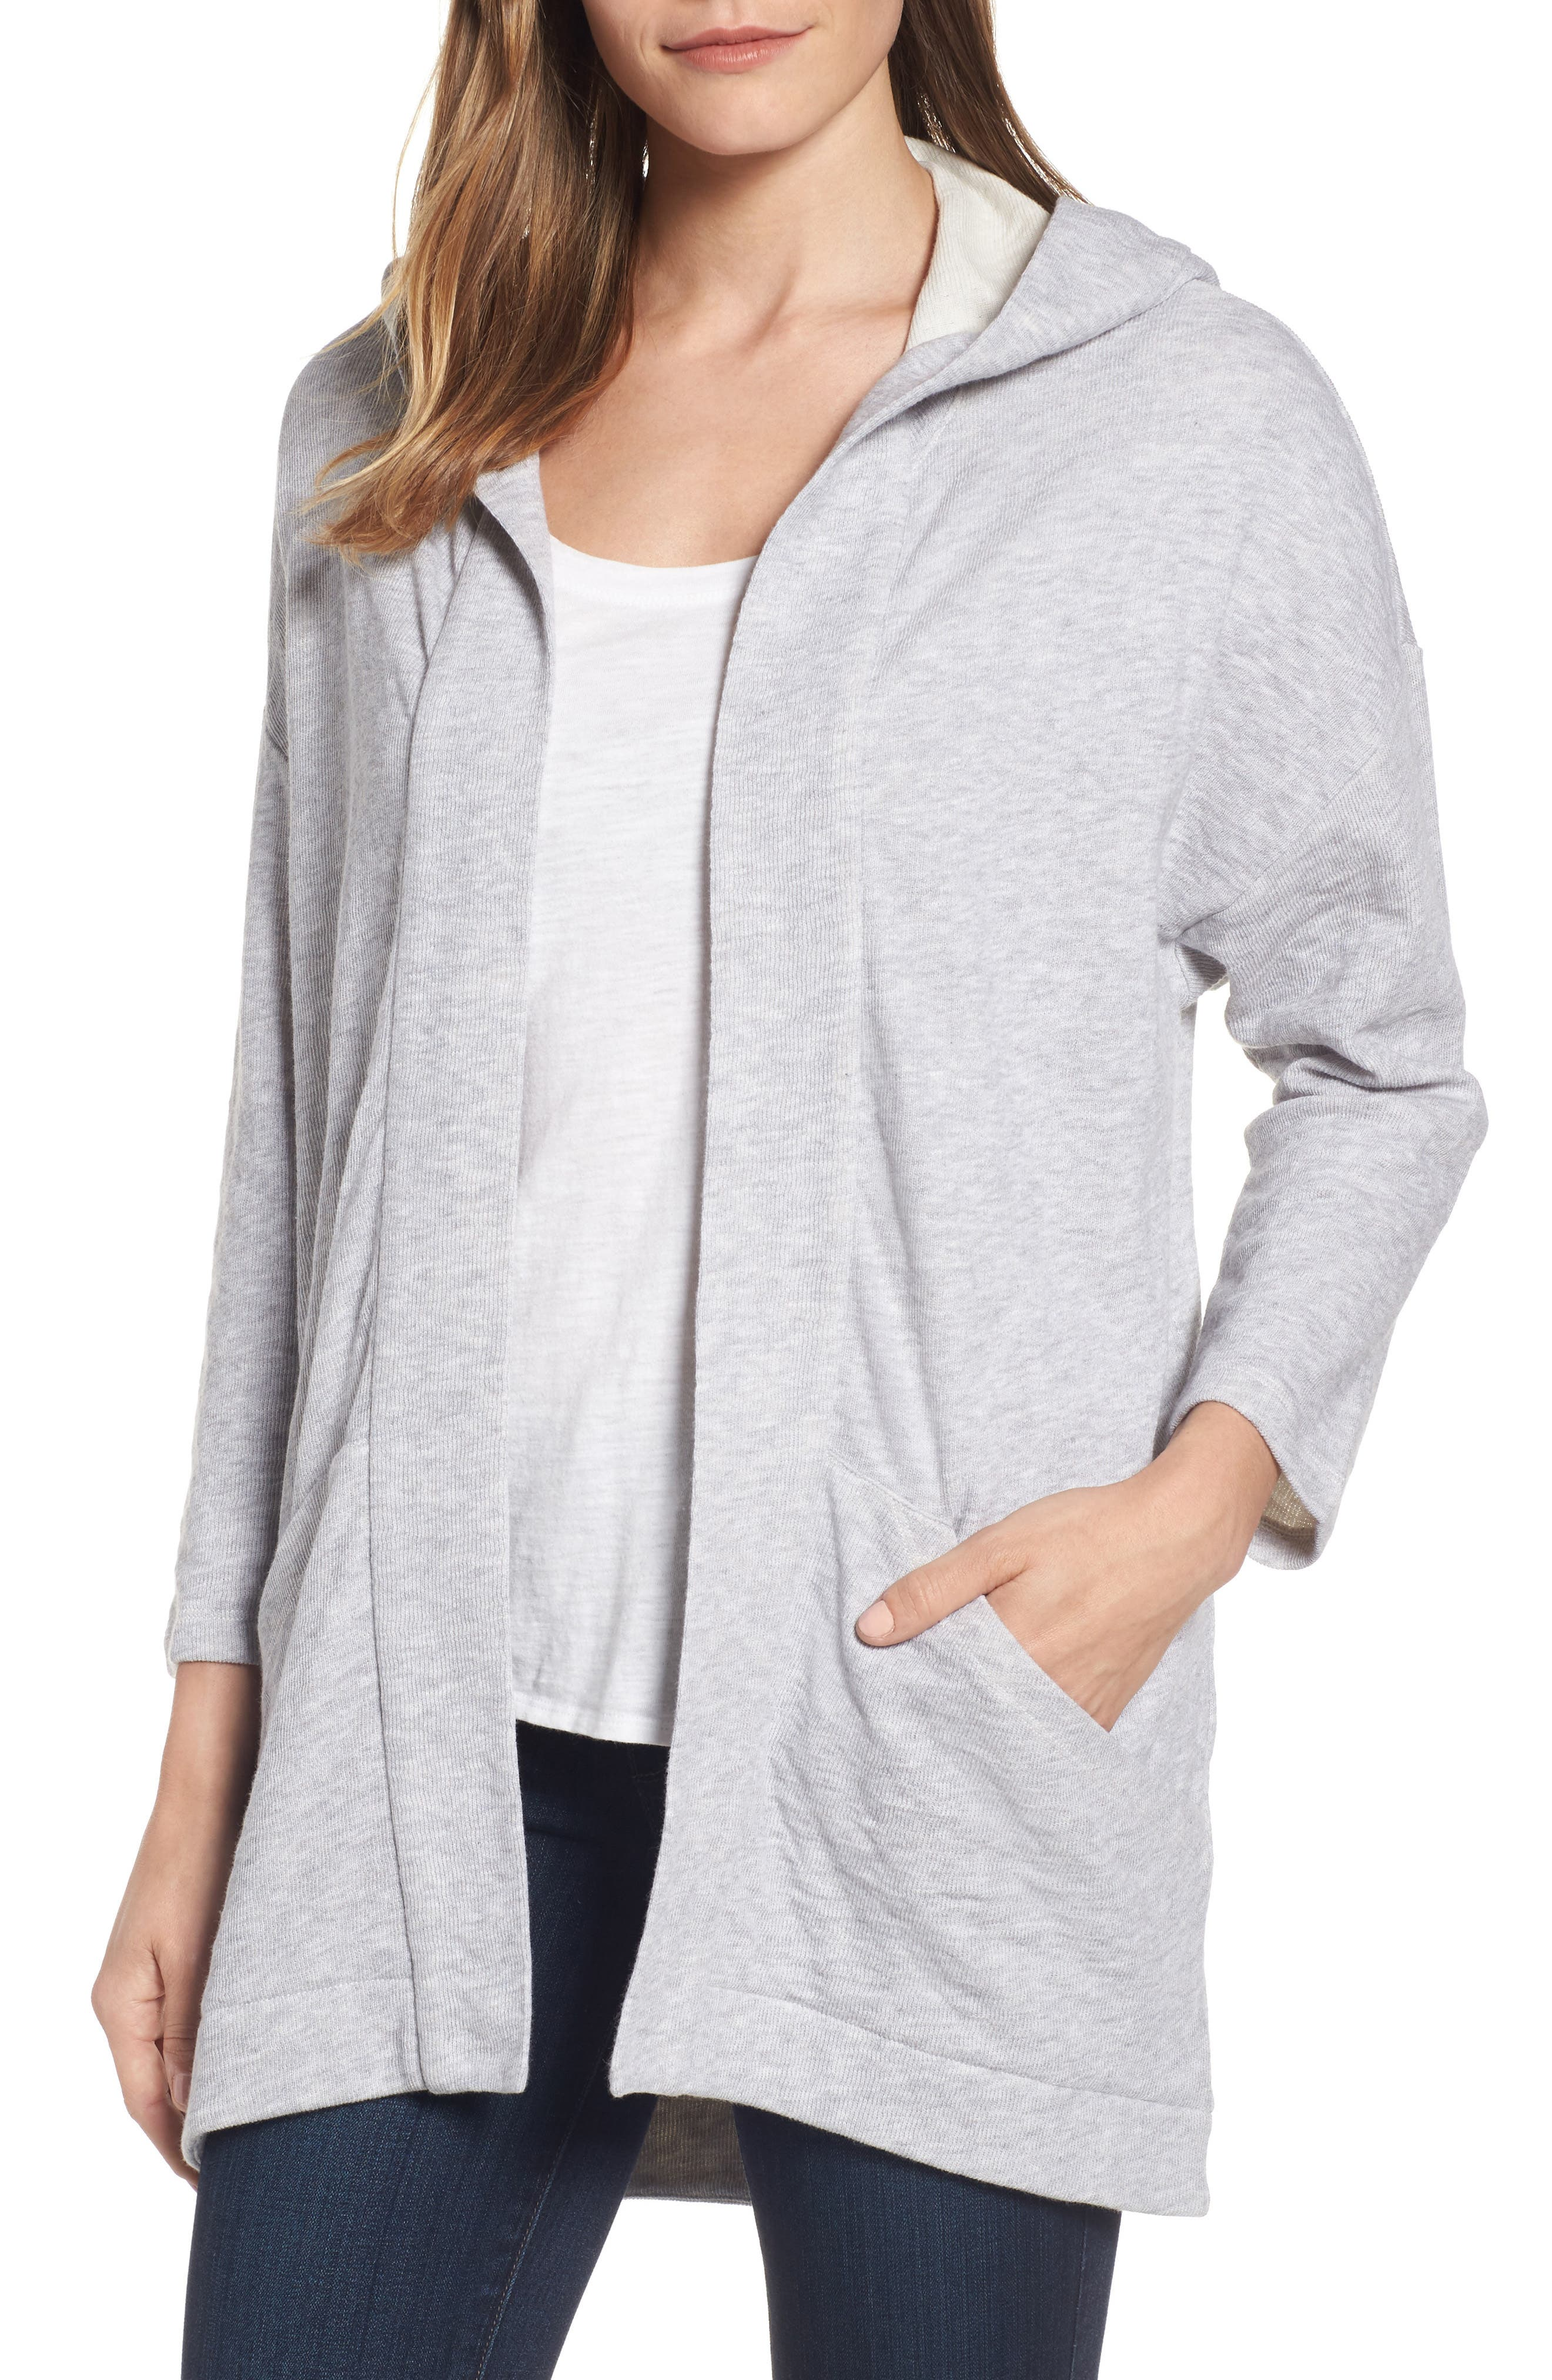 Organic Cotton Knit Hooded Jacket,                         Main,                         color,